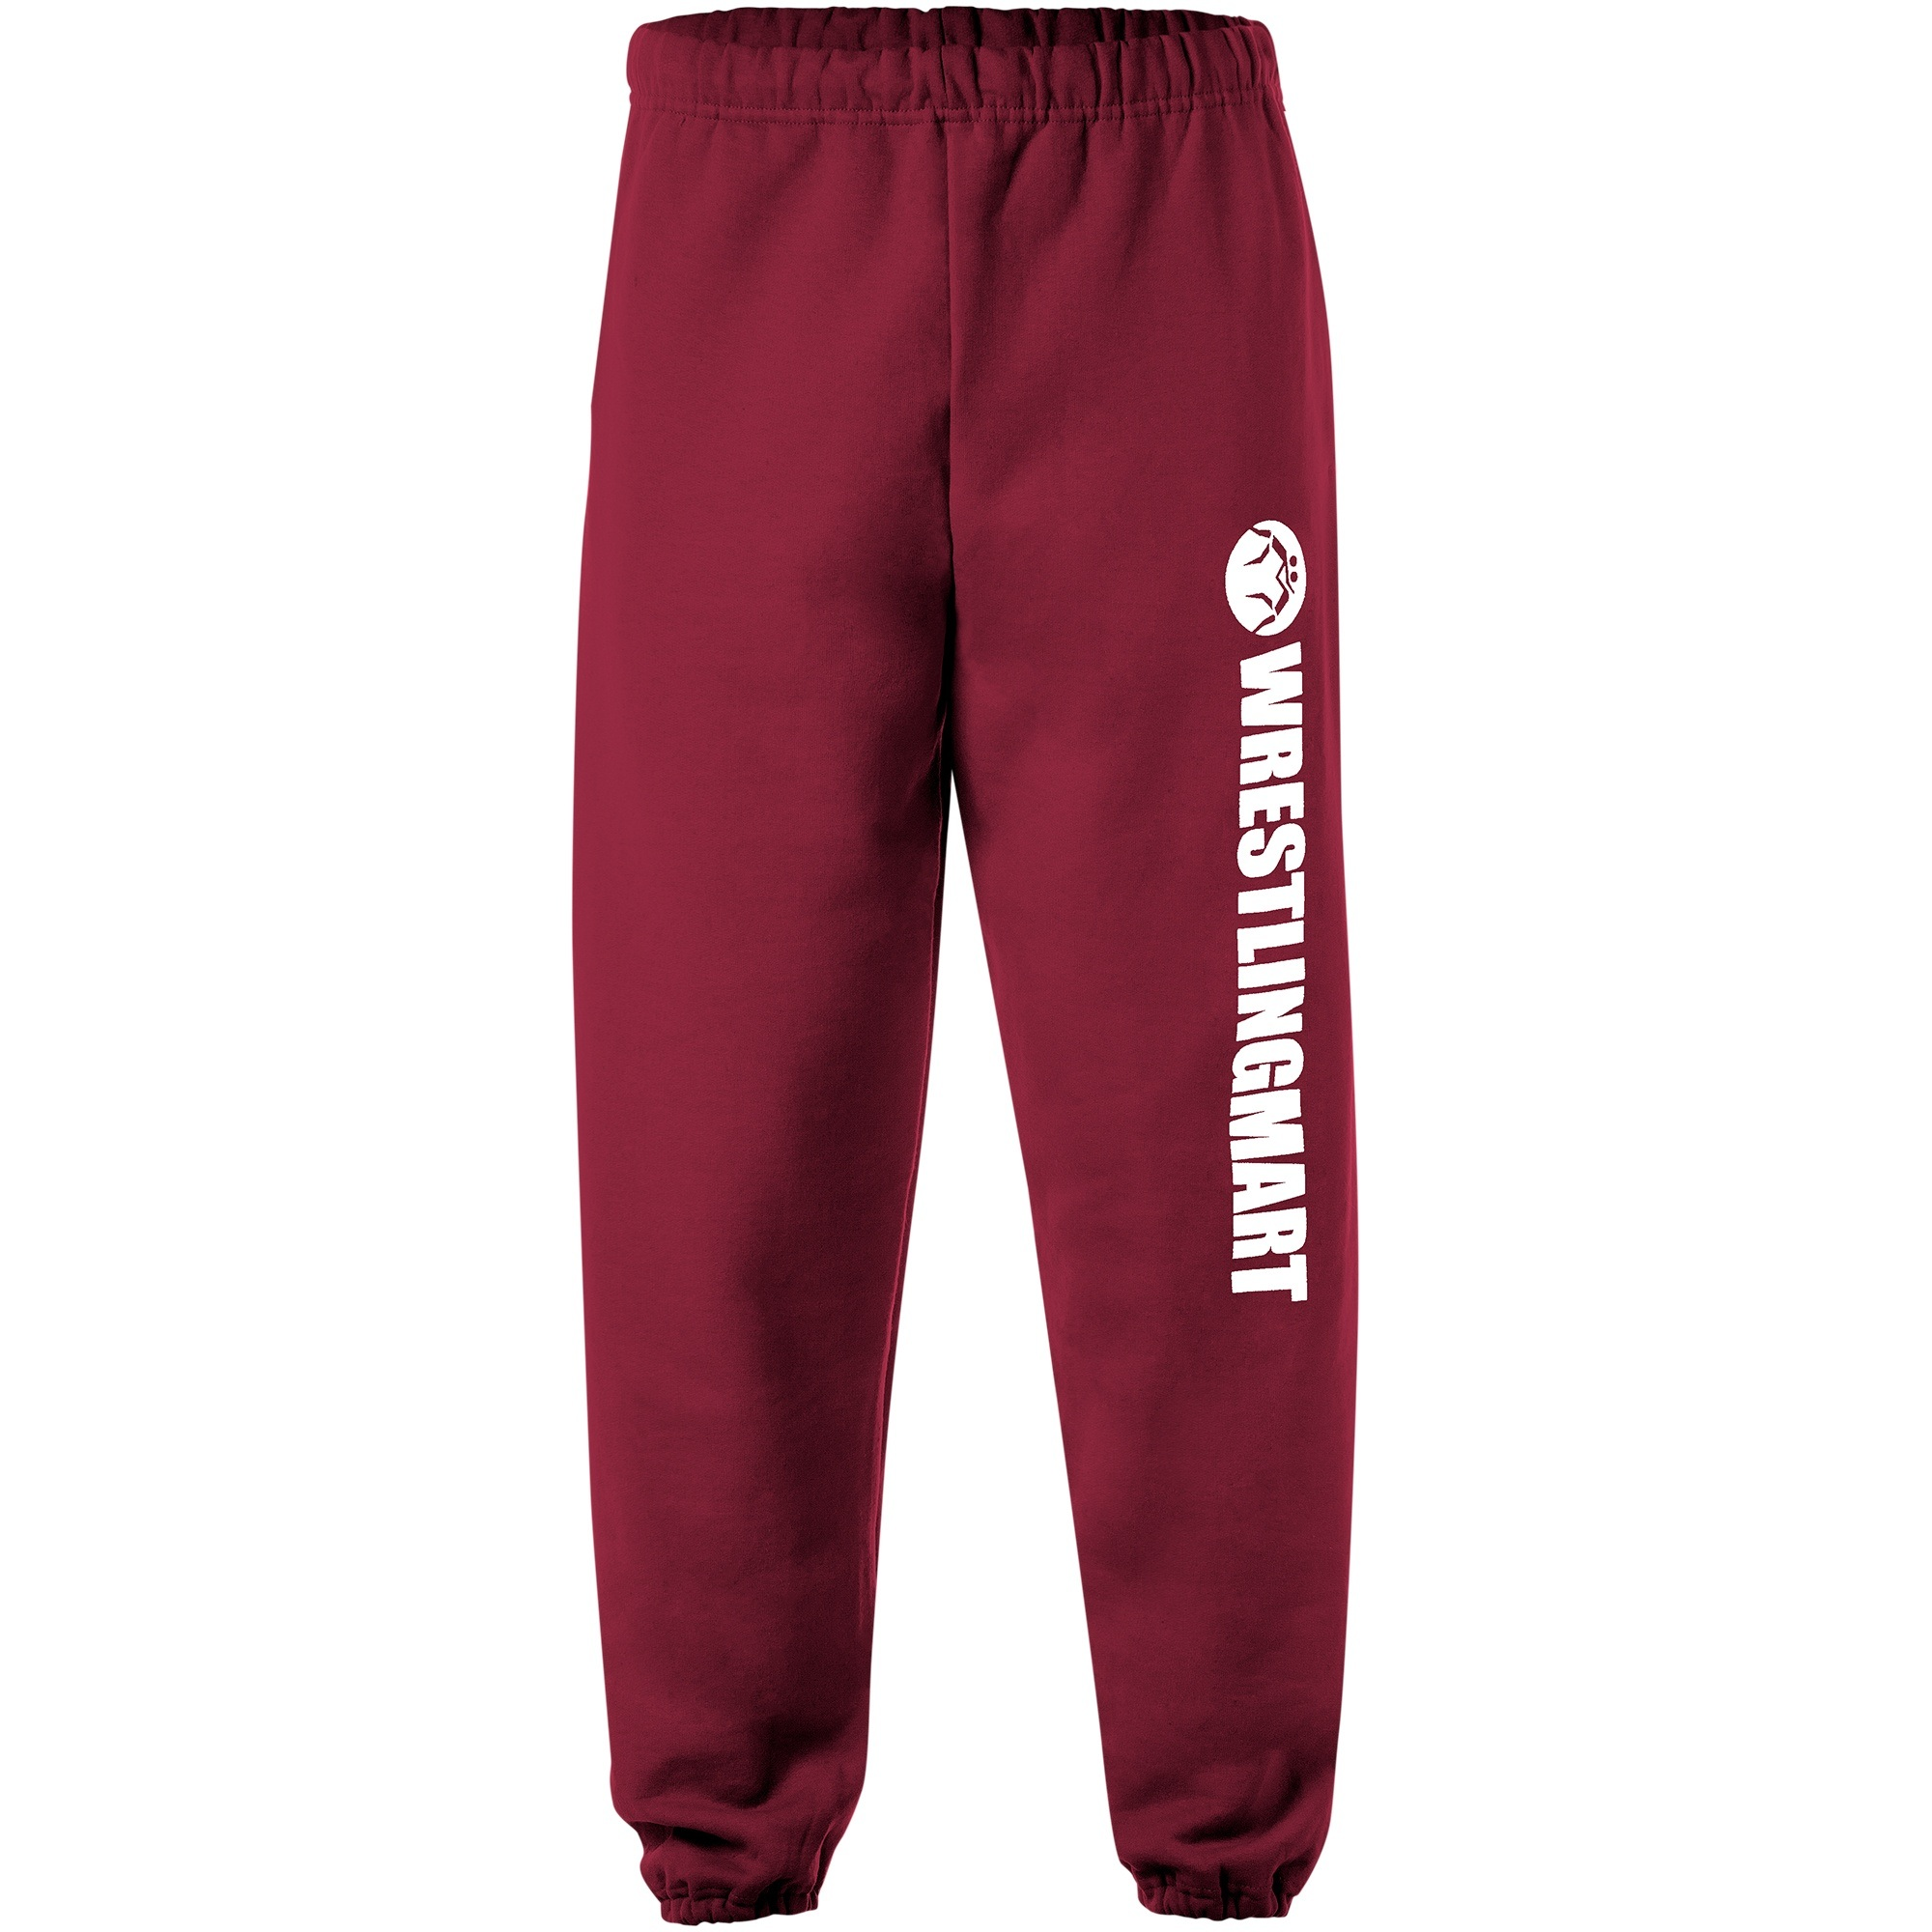 sweat pants ... sweatpants maroon white backwrestlingmart sweatpants maroon white  maroonwrestlingmart sweatpants maroon white maroon nadqjdm